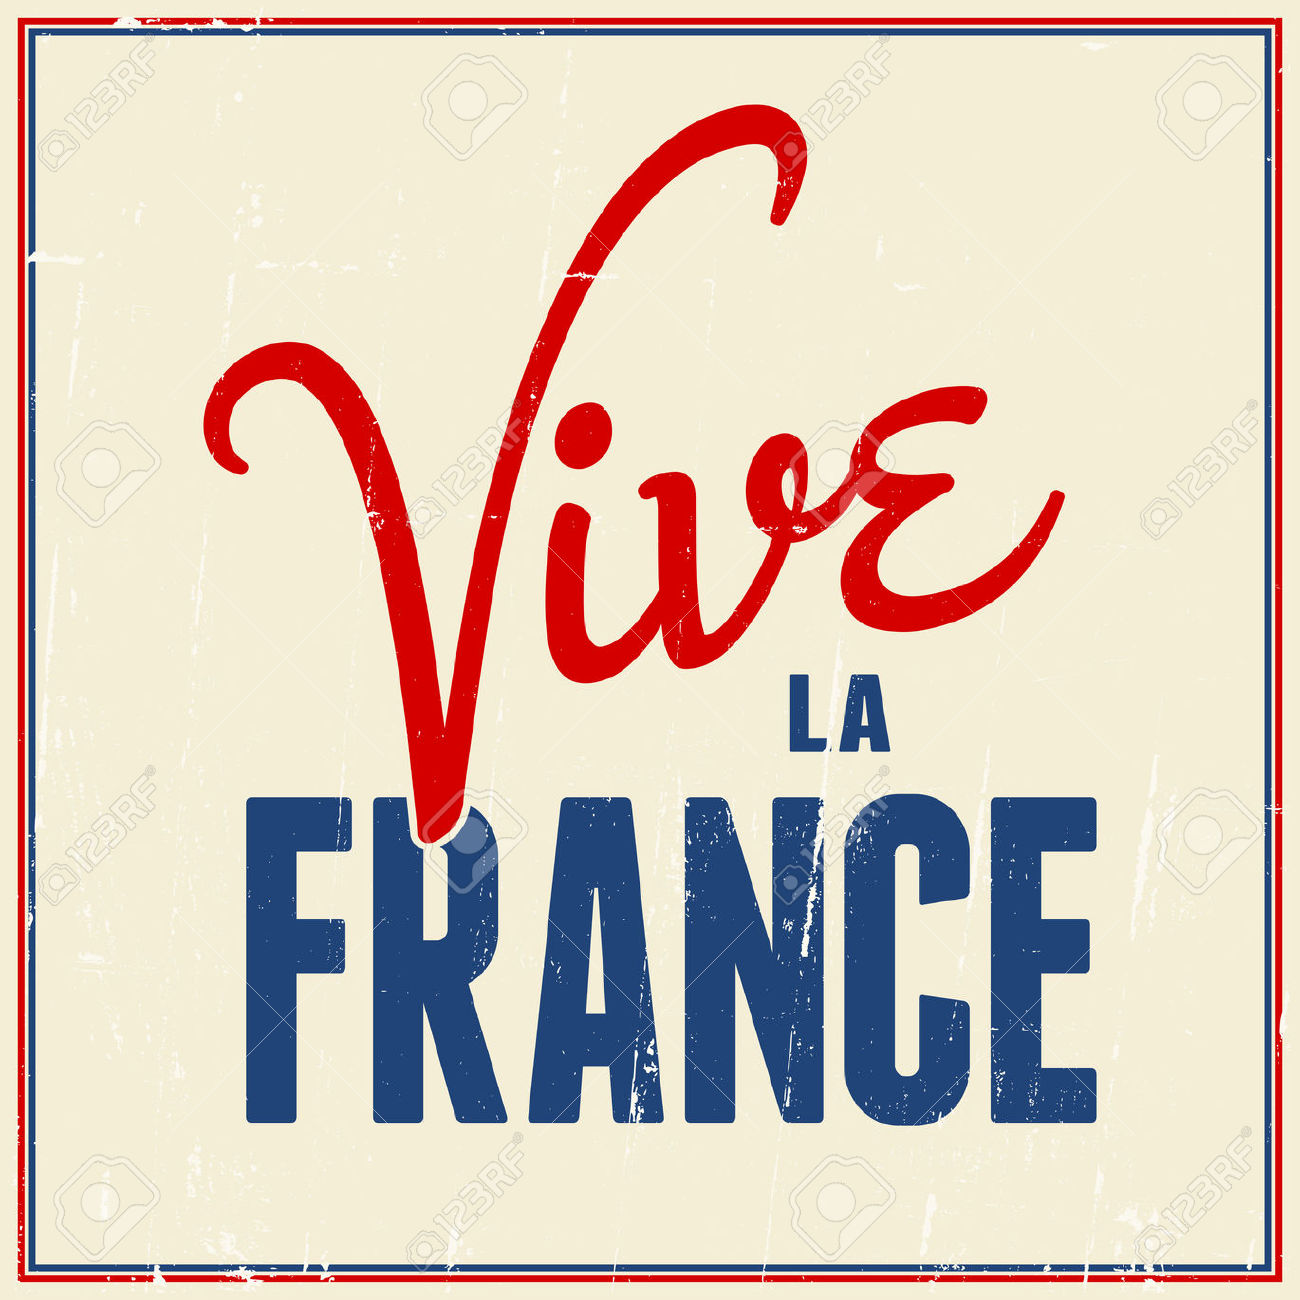 29828849-Text-design-greeting-card-for-the-French-National-Day-July-14-Vive-La-France-Long-Live-France--Stock-Vector.jpg